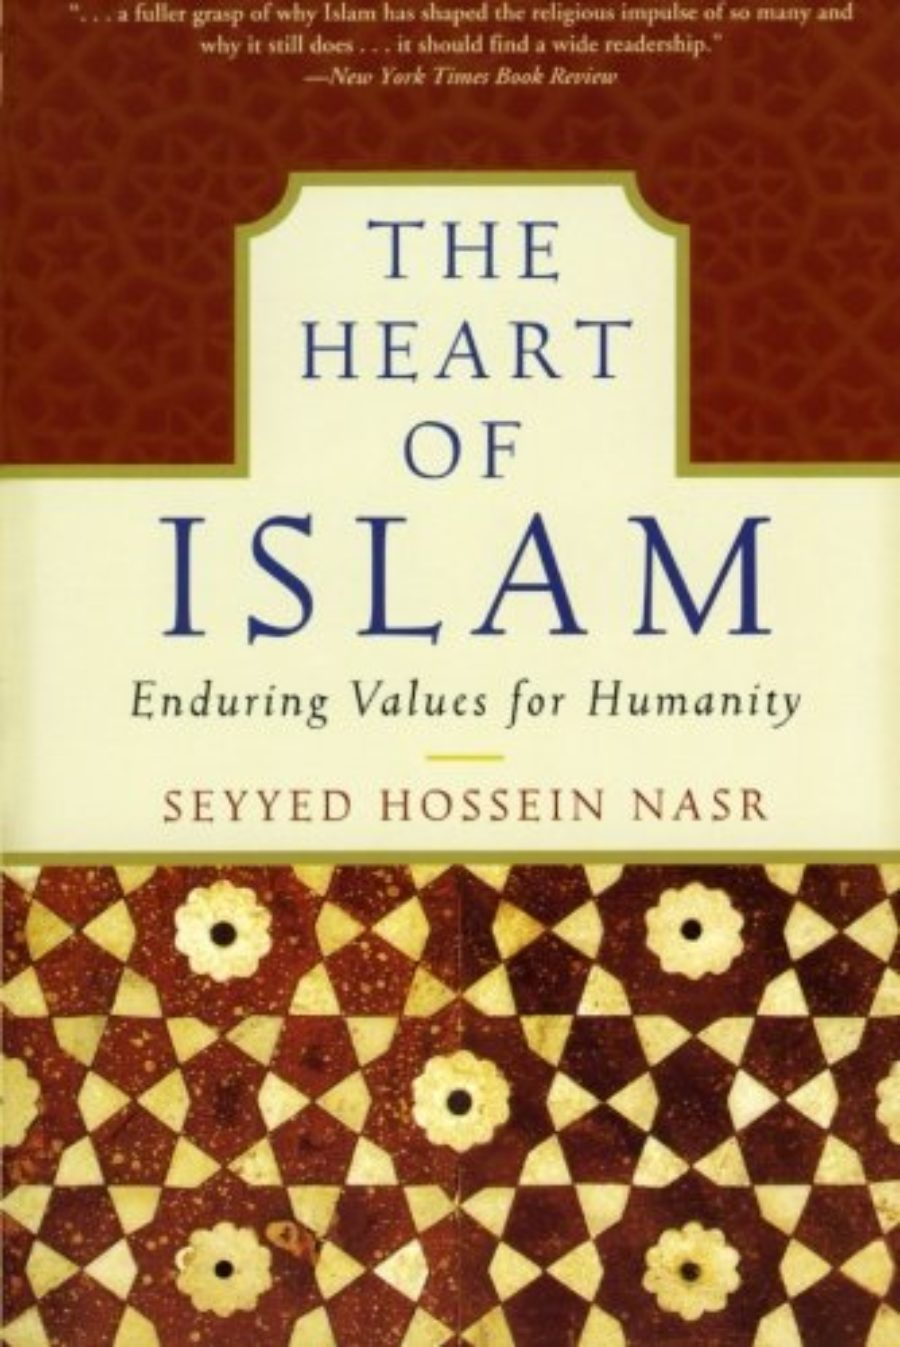 Cover of The Heart of Islam: Enduring Values for Humanity